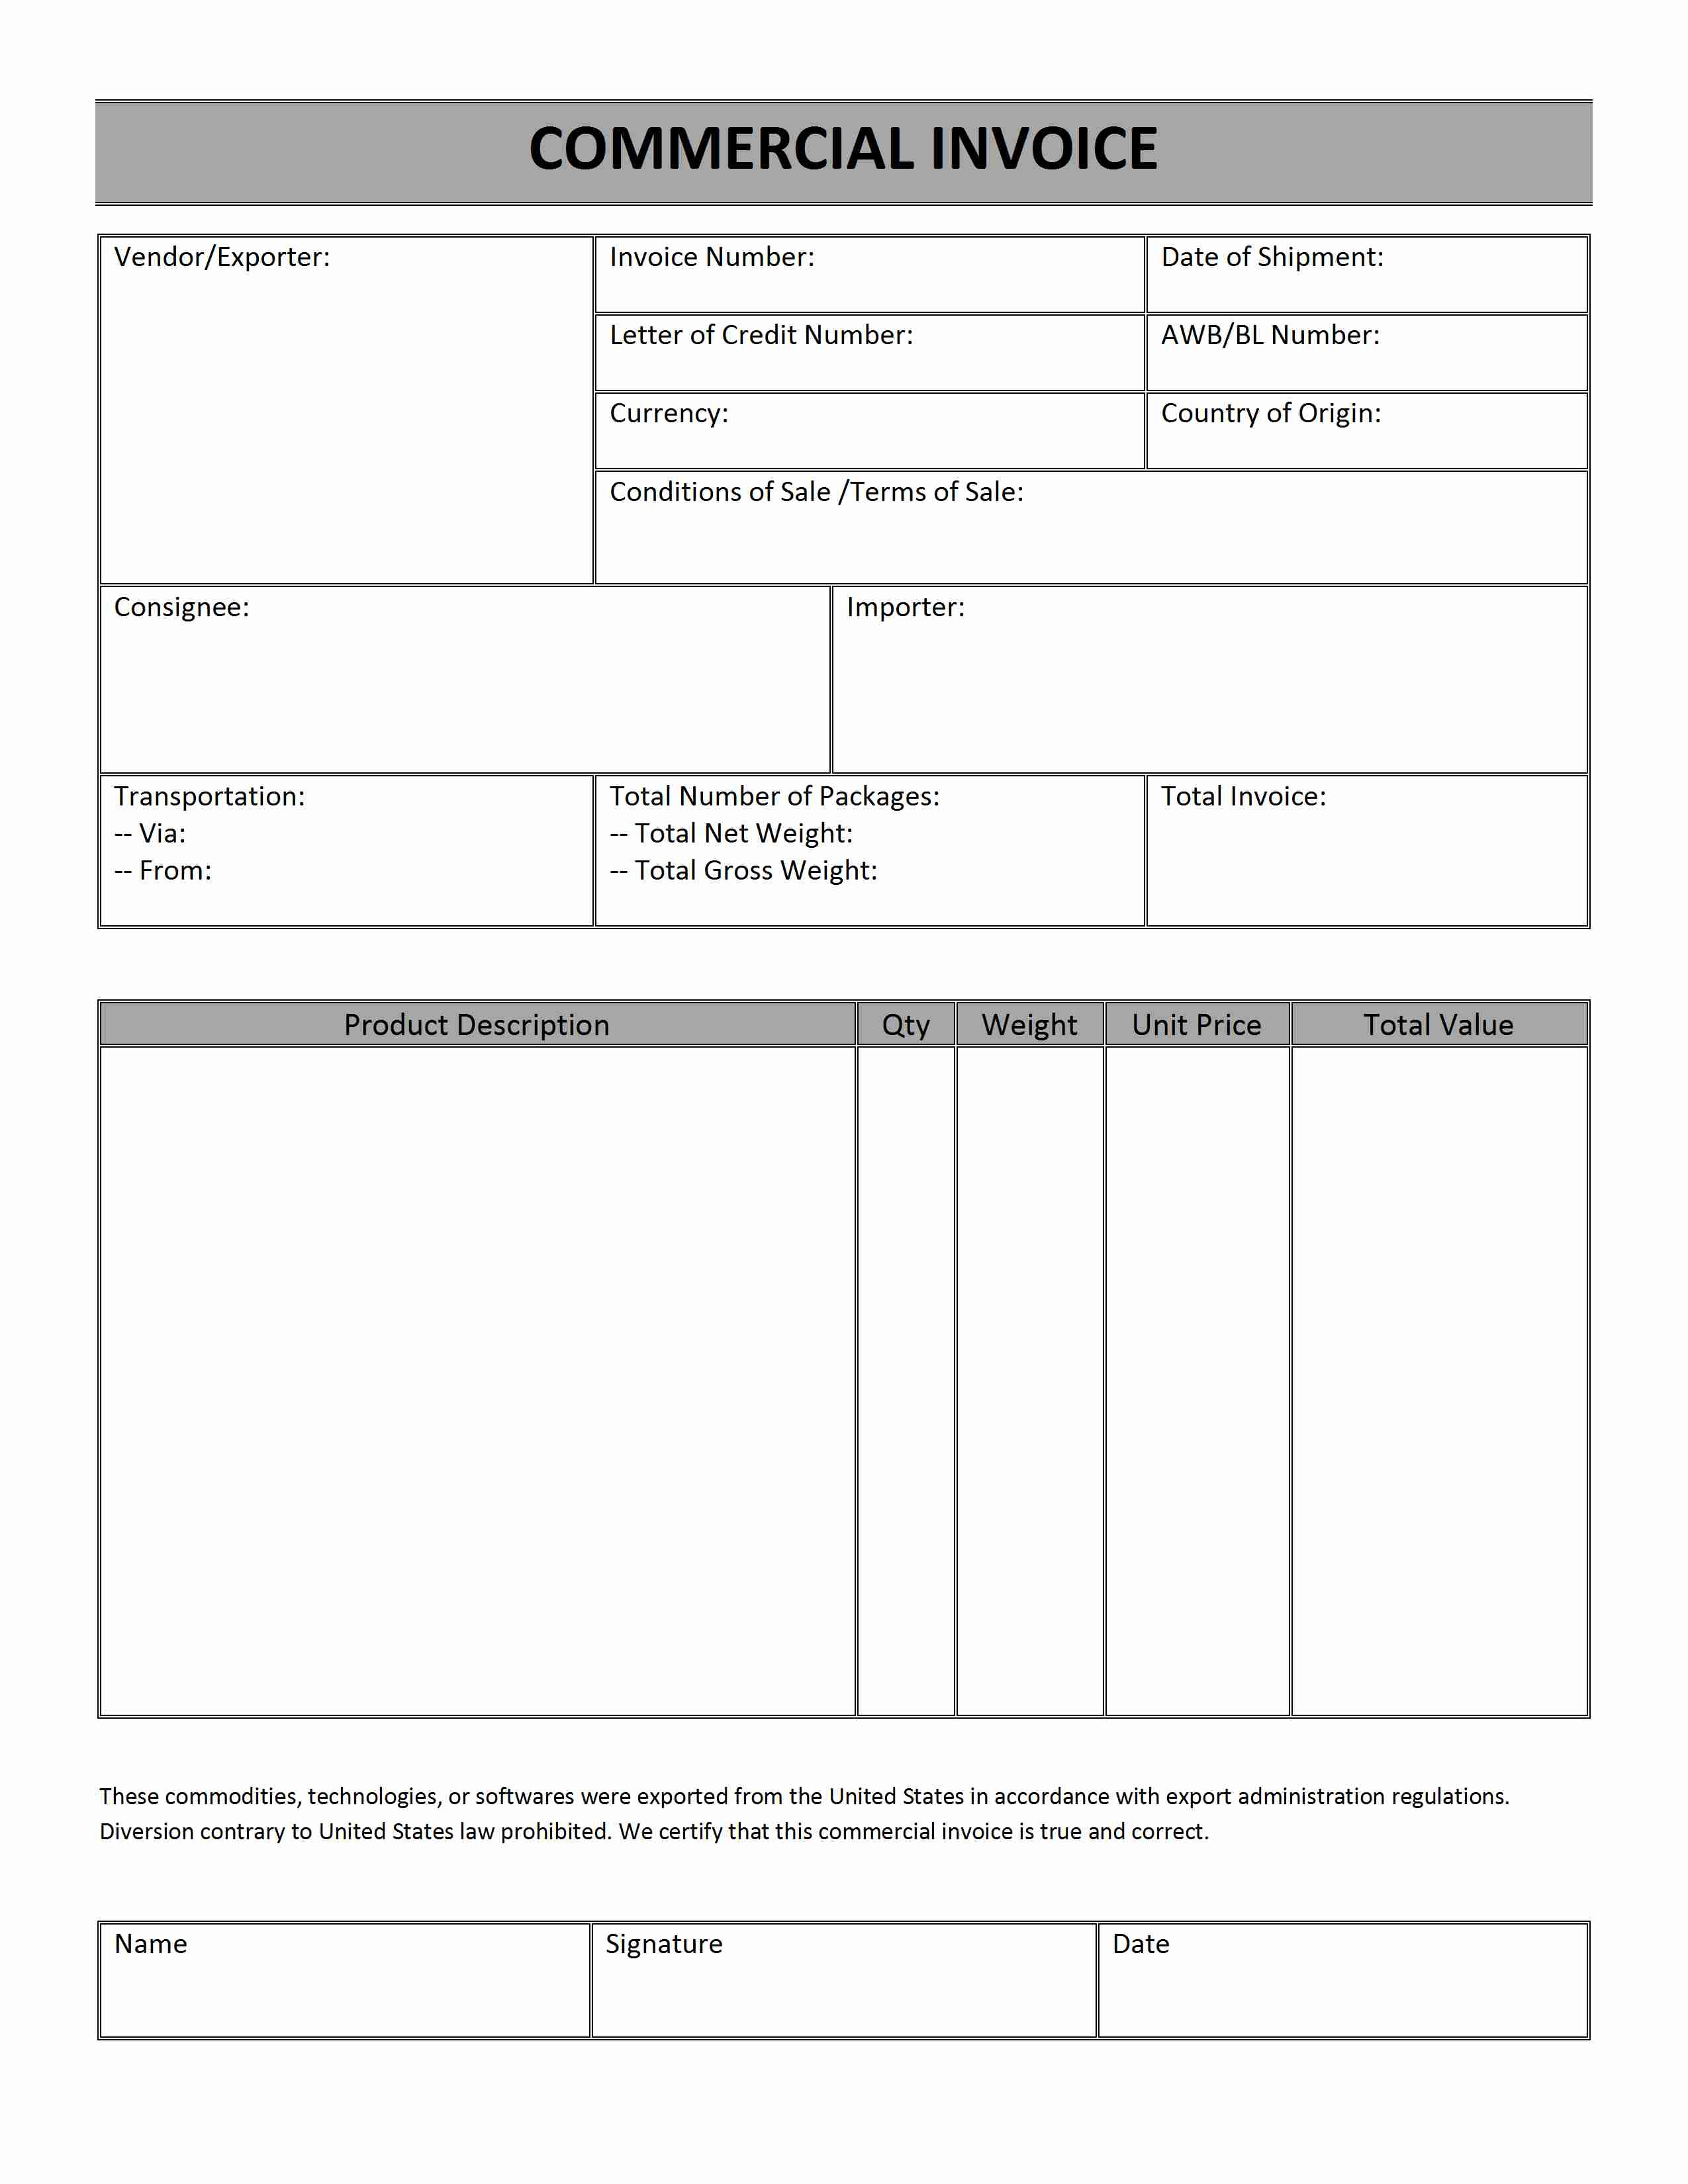 Soulfulpowerus  Splendid Printable Sales Invoice Simple Invoice Form Free Invoice  With Remarkable Printable Receipt Free  Free Printable Raffle Tickets  Receipt   Printable With Breathtaking Received Receipt Format Also Format Of Rent Receipt In Addition Receipt Of Money Template And Returning Faulty Goods Without A Receipt As Well As Services Receipt Template Additionally Ipad Receipt Scanner From Happytomco With Soulfulpowerus  Remarkable Printable Sales Invoice Simple Invoice Form Free Invoice  With Breathtaking Printable Receipt Free  Free Printable Raffle Tickets  Receipt   Printable And Splendid Received Receipt Format Also Format Of Rent Receipt In Addition Receipt Of Money Template From Happytomco